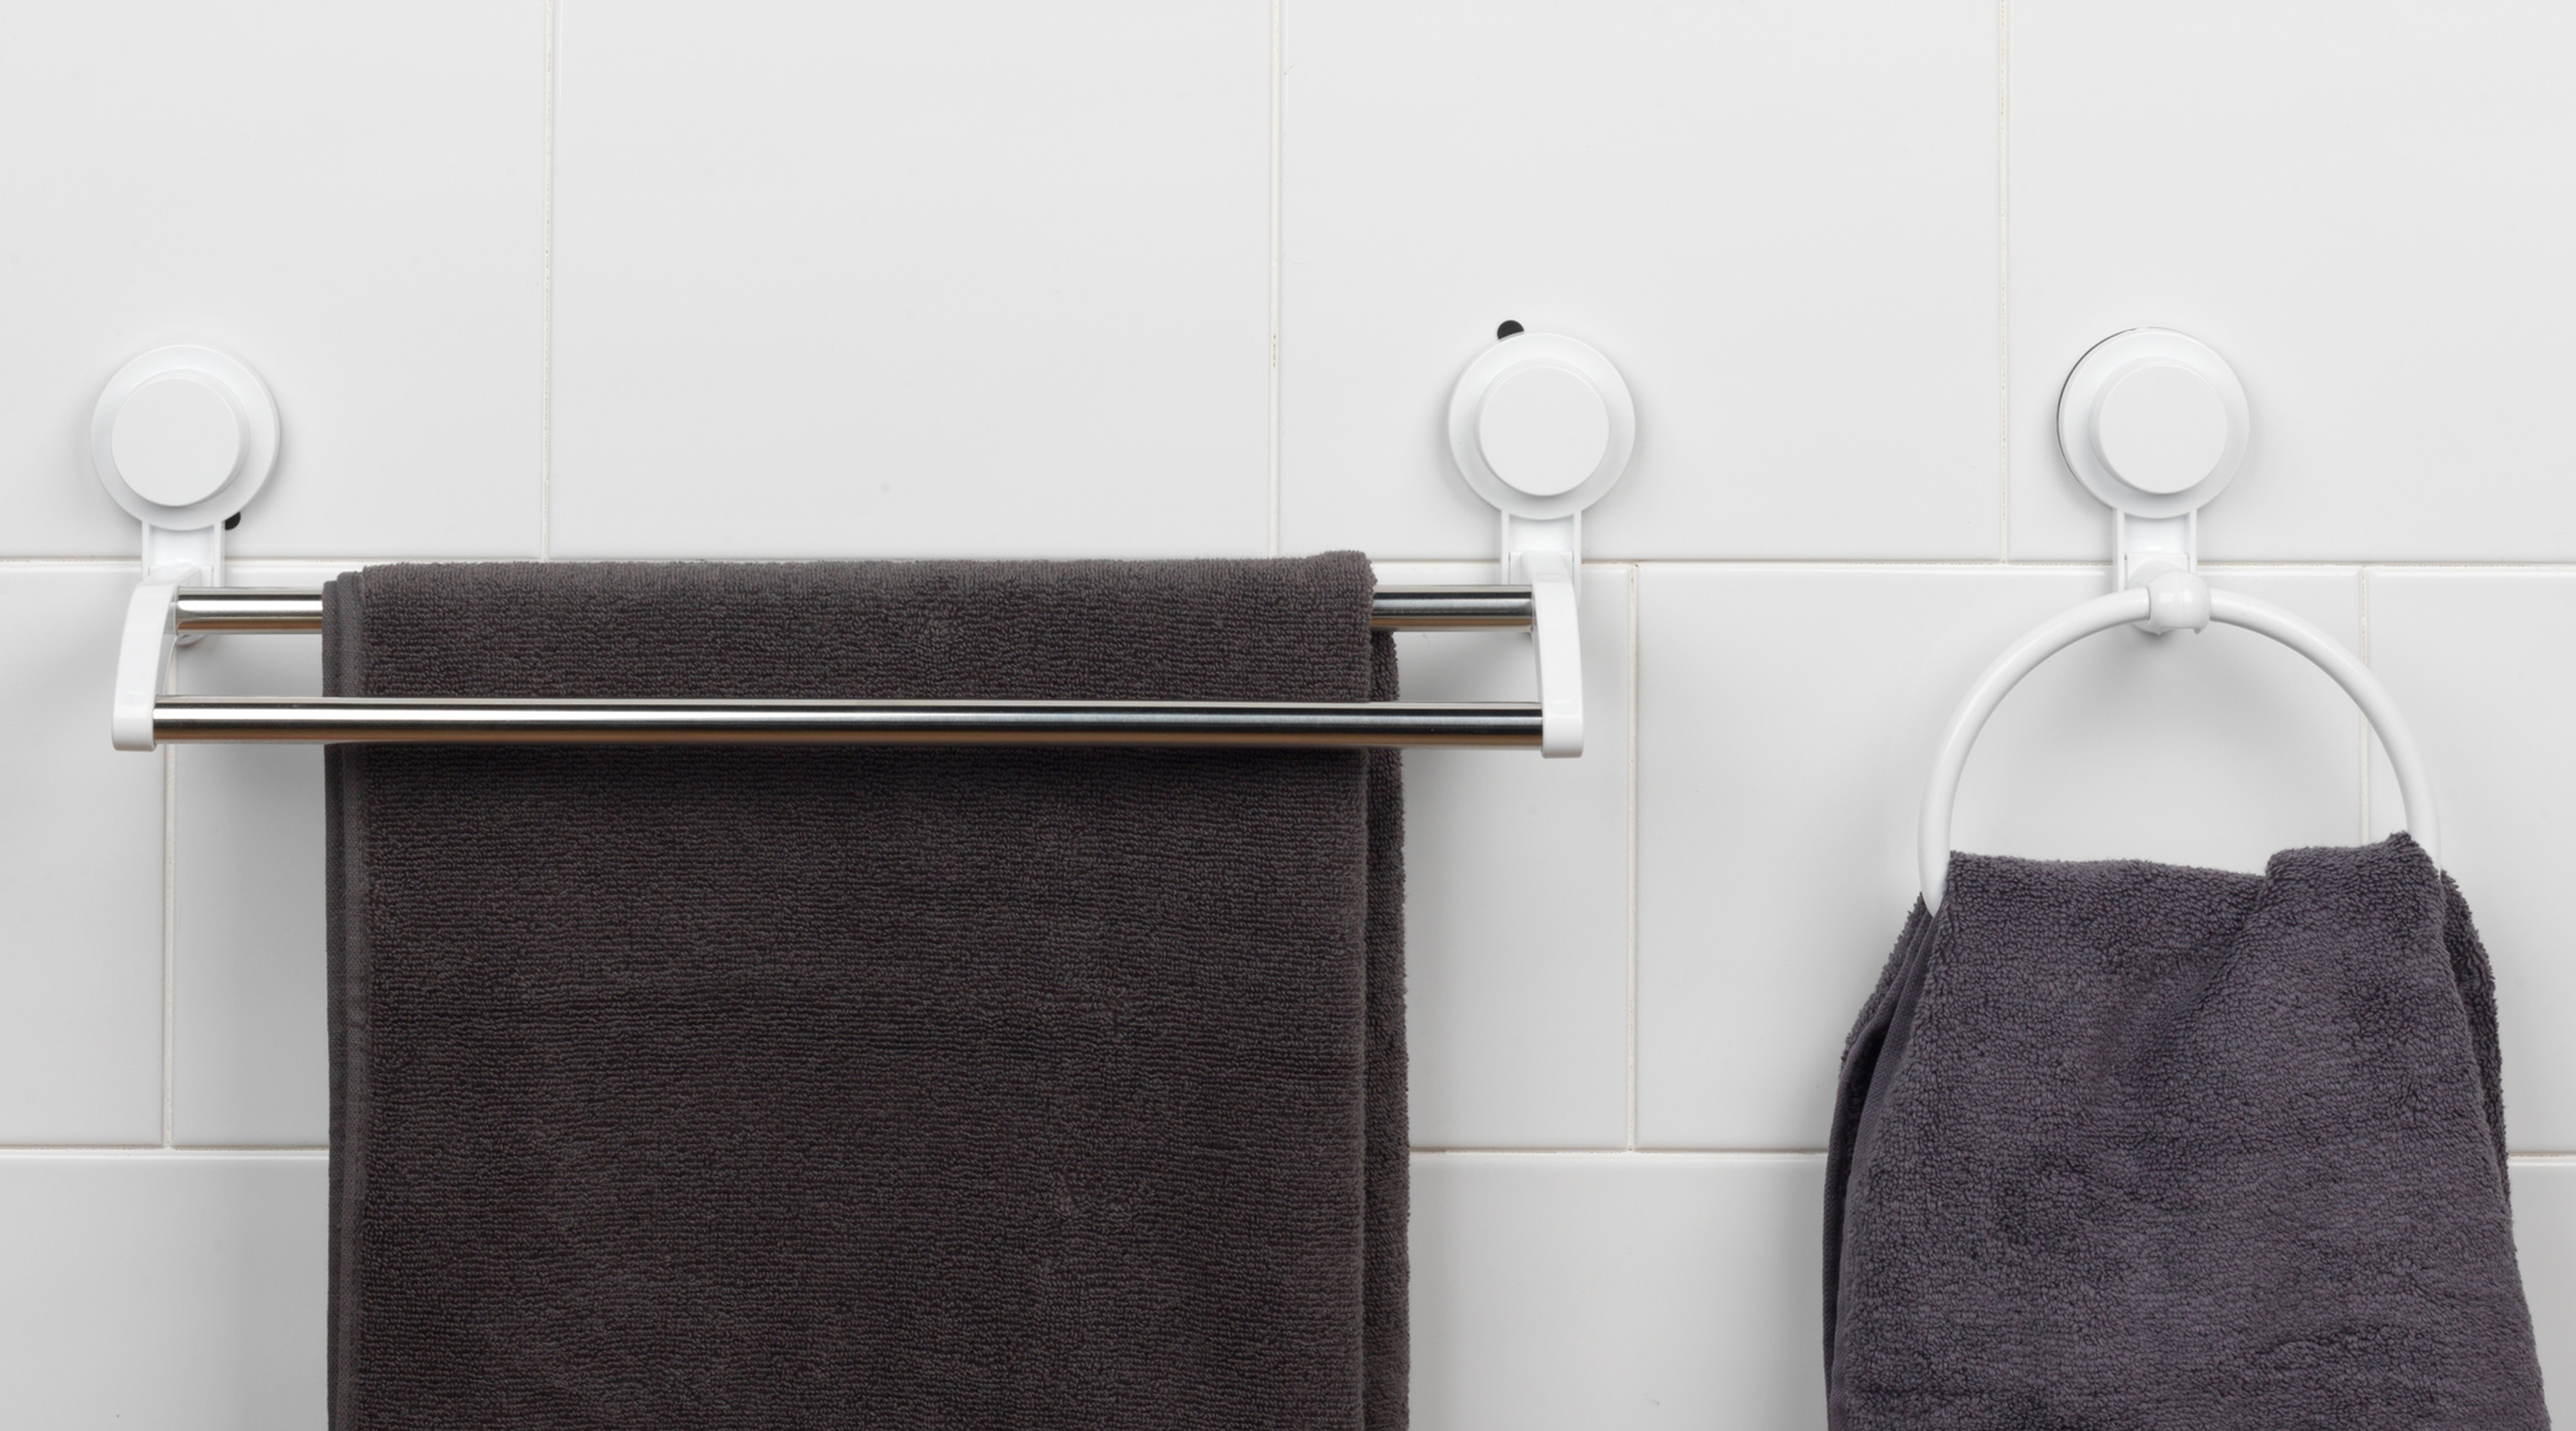 Beldray Bathroom Plastic Suction Towel Ring And Double